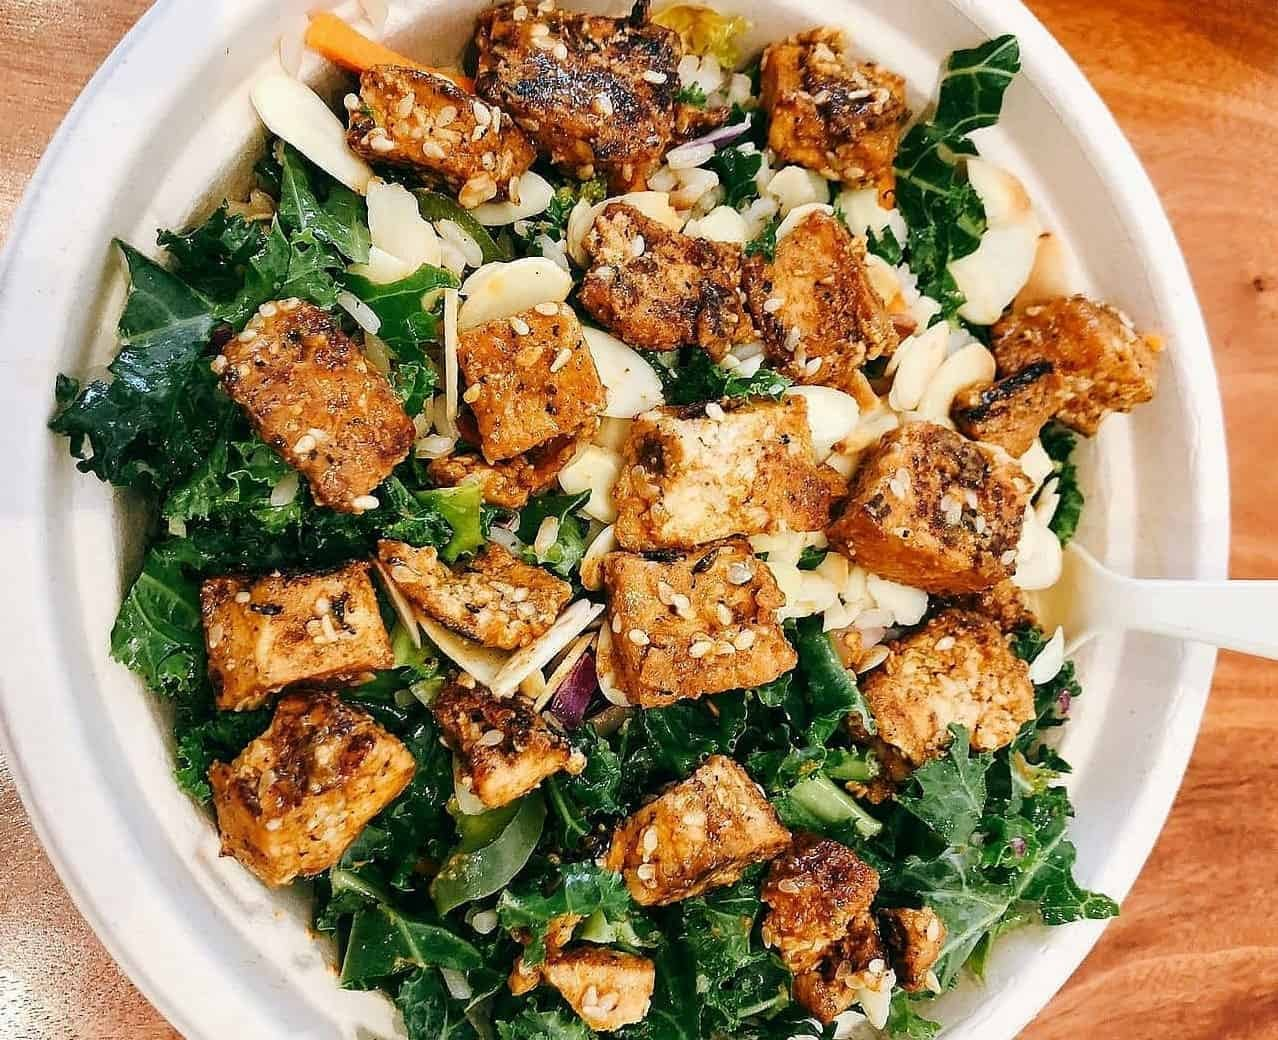 bowl of tofu and greens in paper bowl wooden counter kale sesame seeds